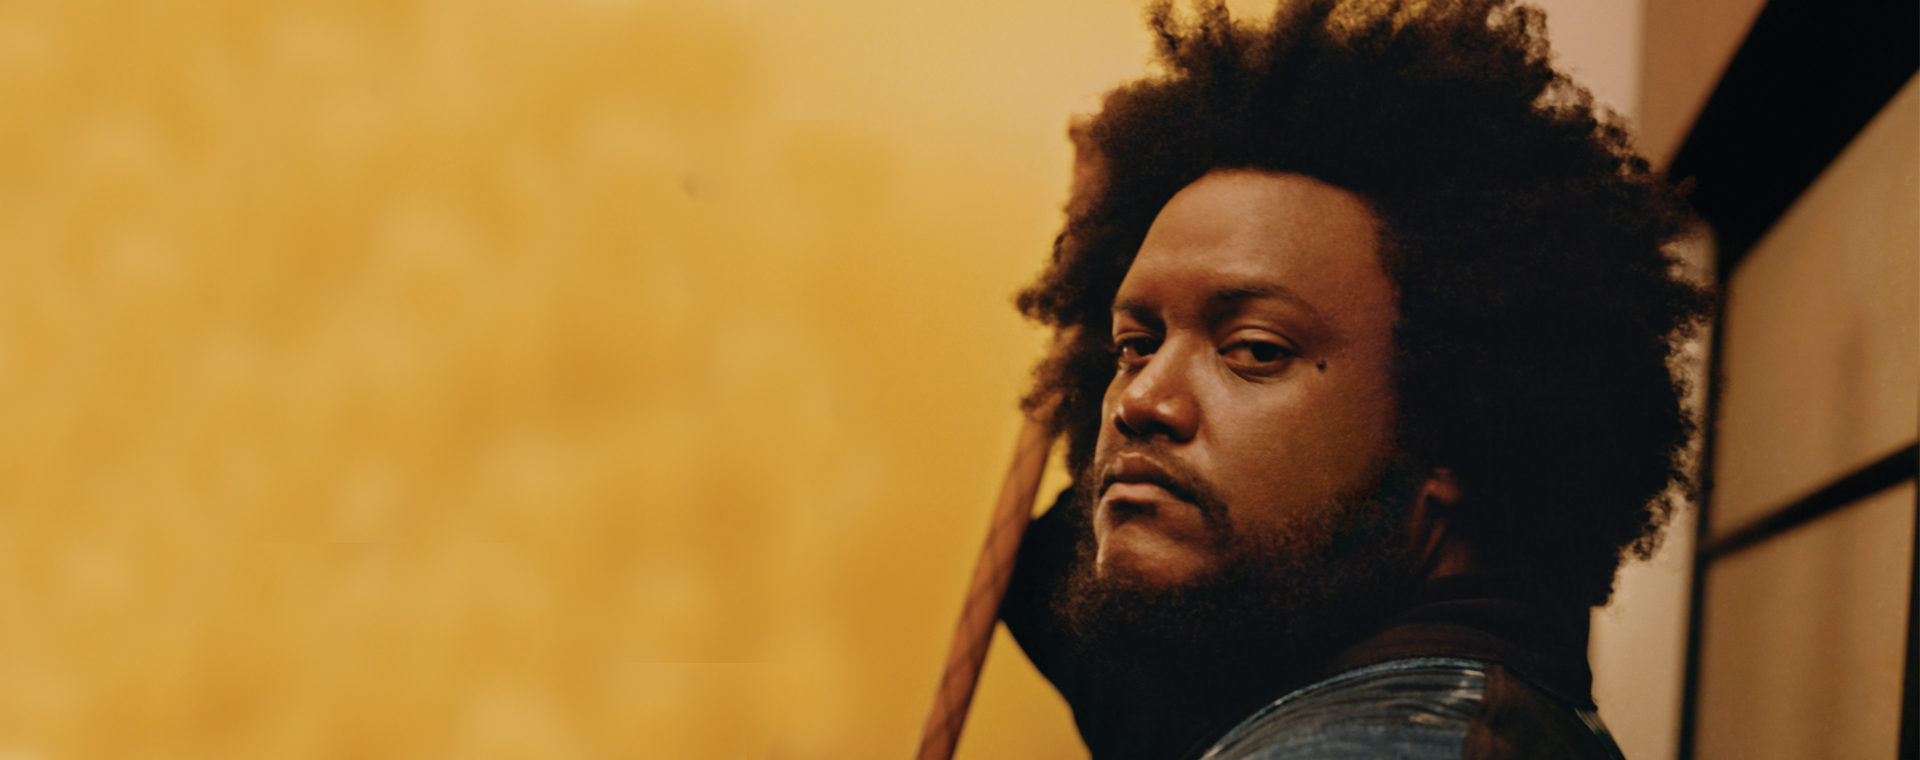 LATEST ISSUE <br><b>Kamasi Washington</b></br>